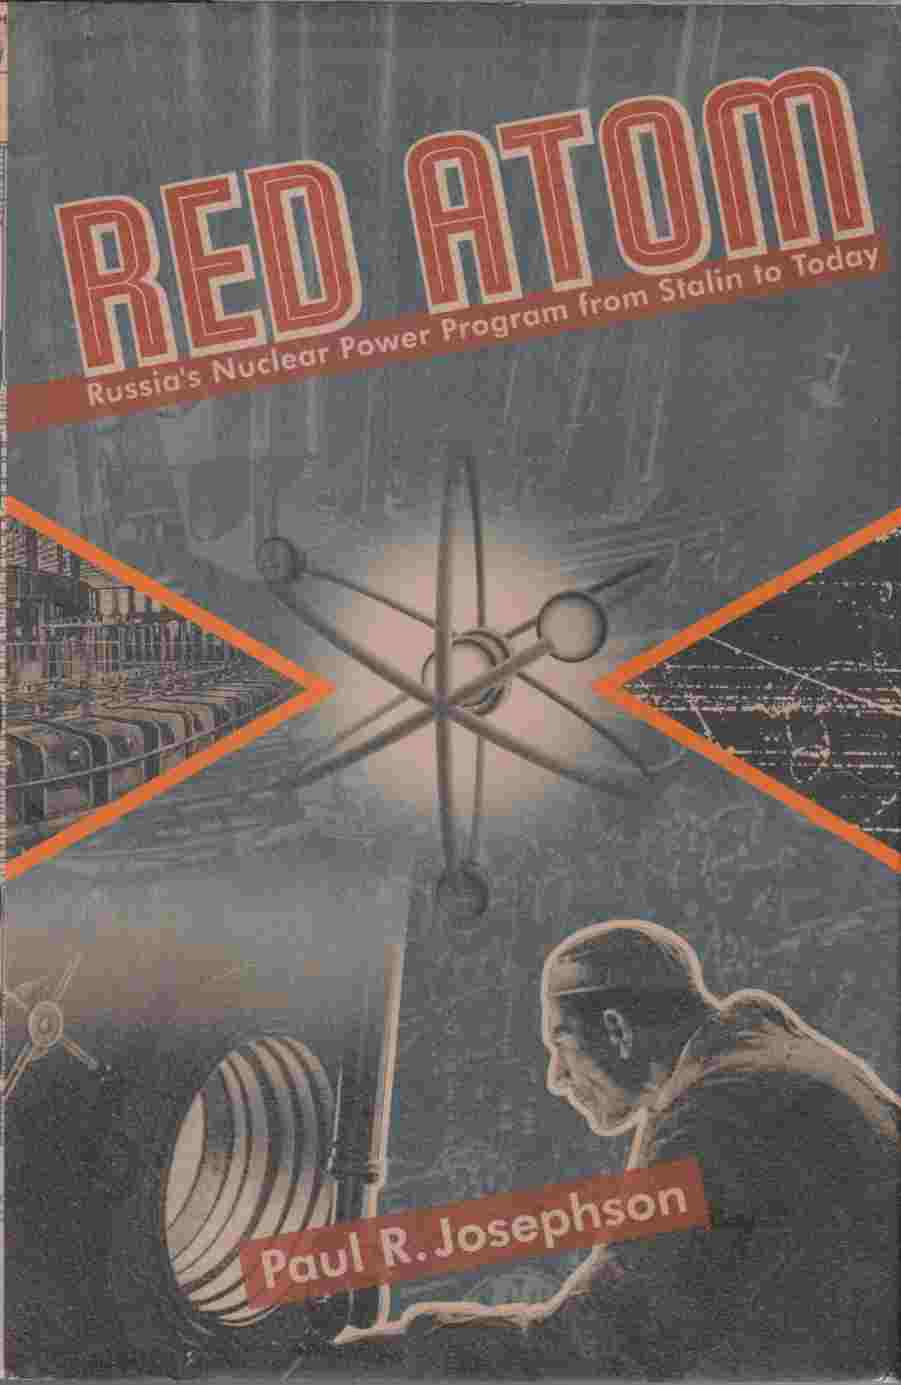 Image for Red Atom Russia's Nuclear Power Program from Stalin to Today